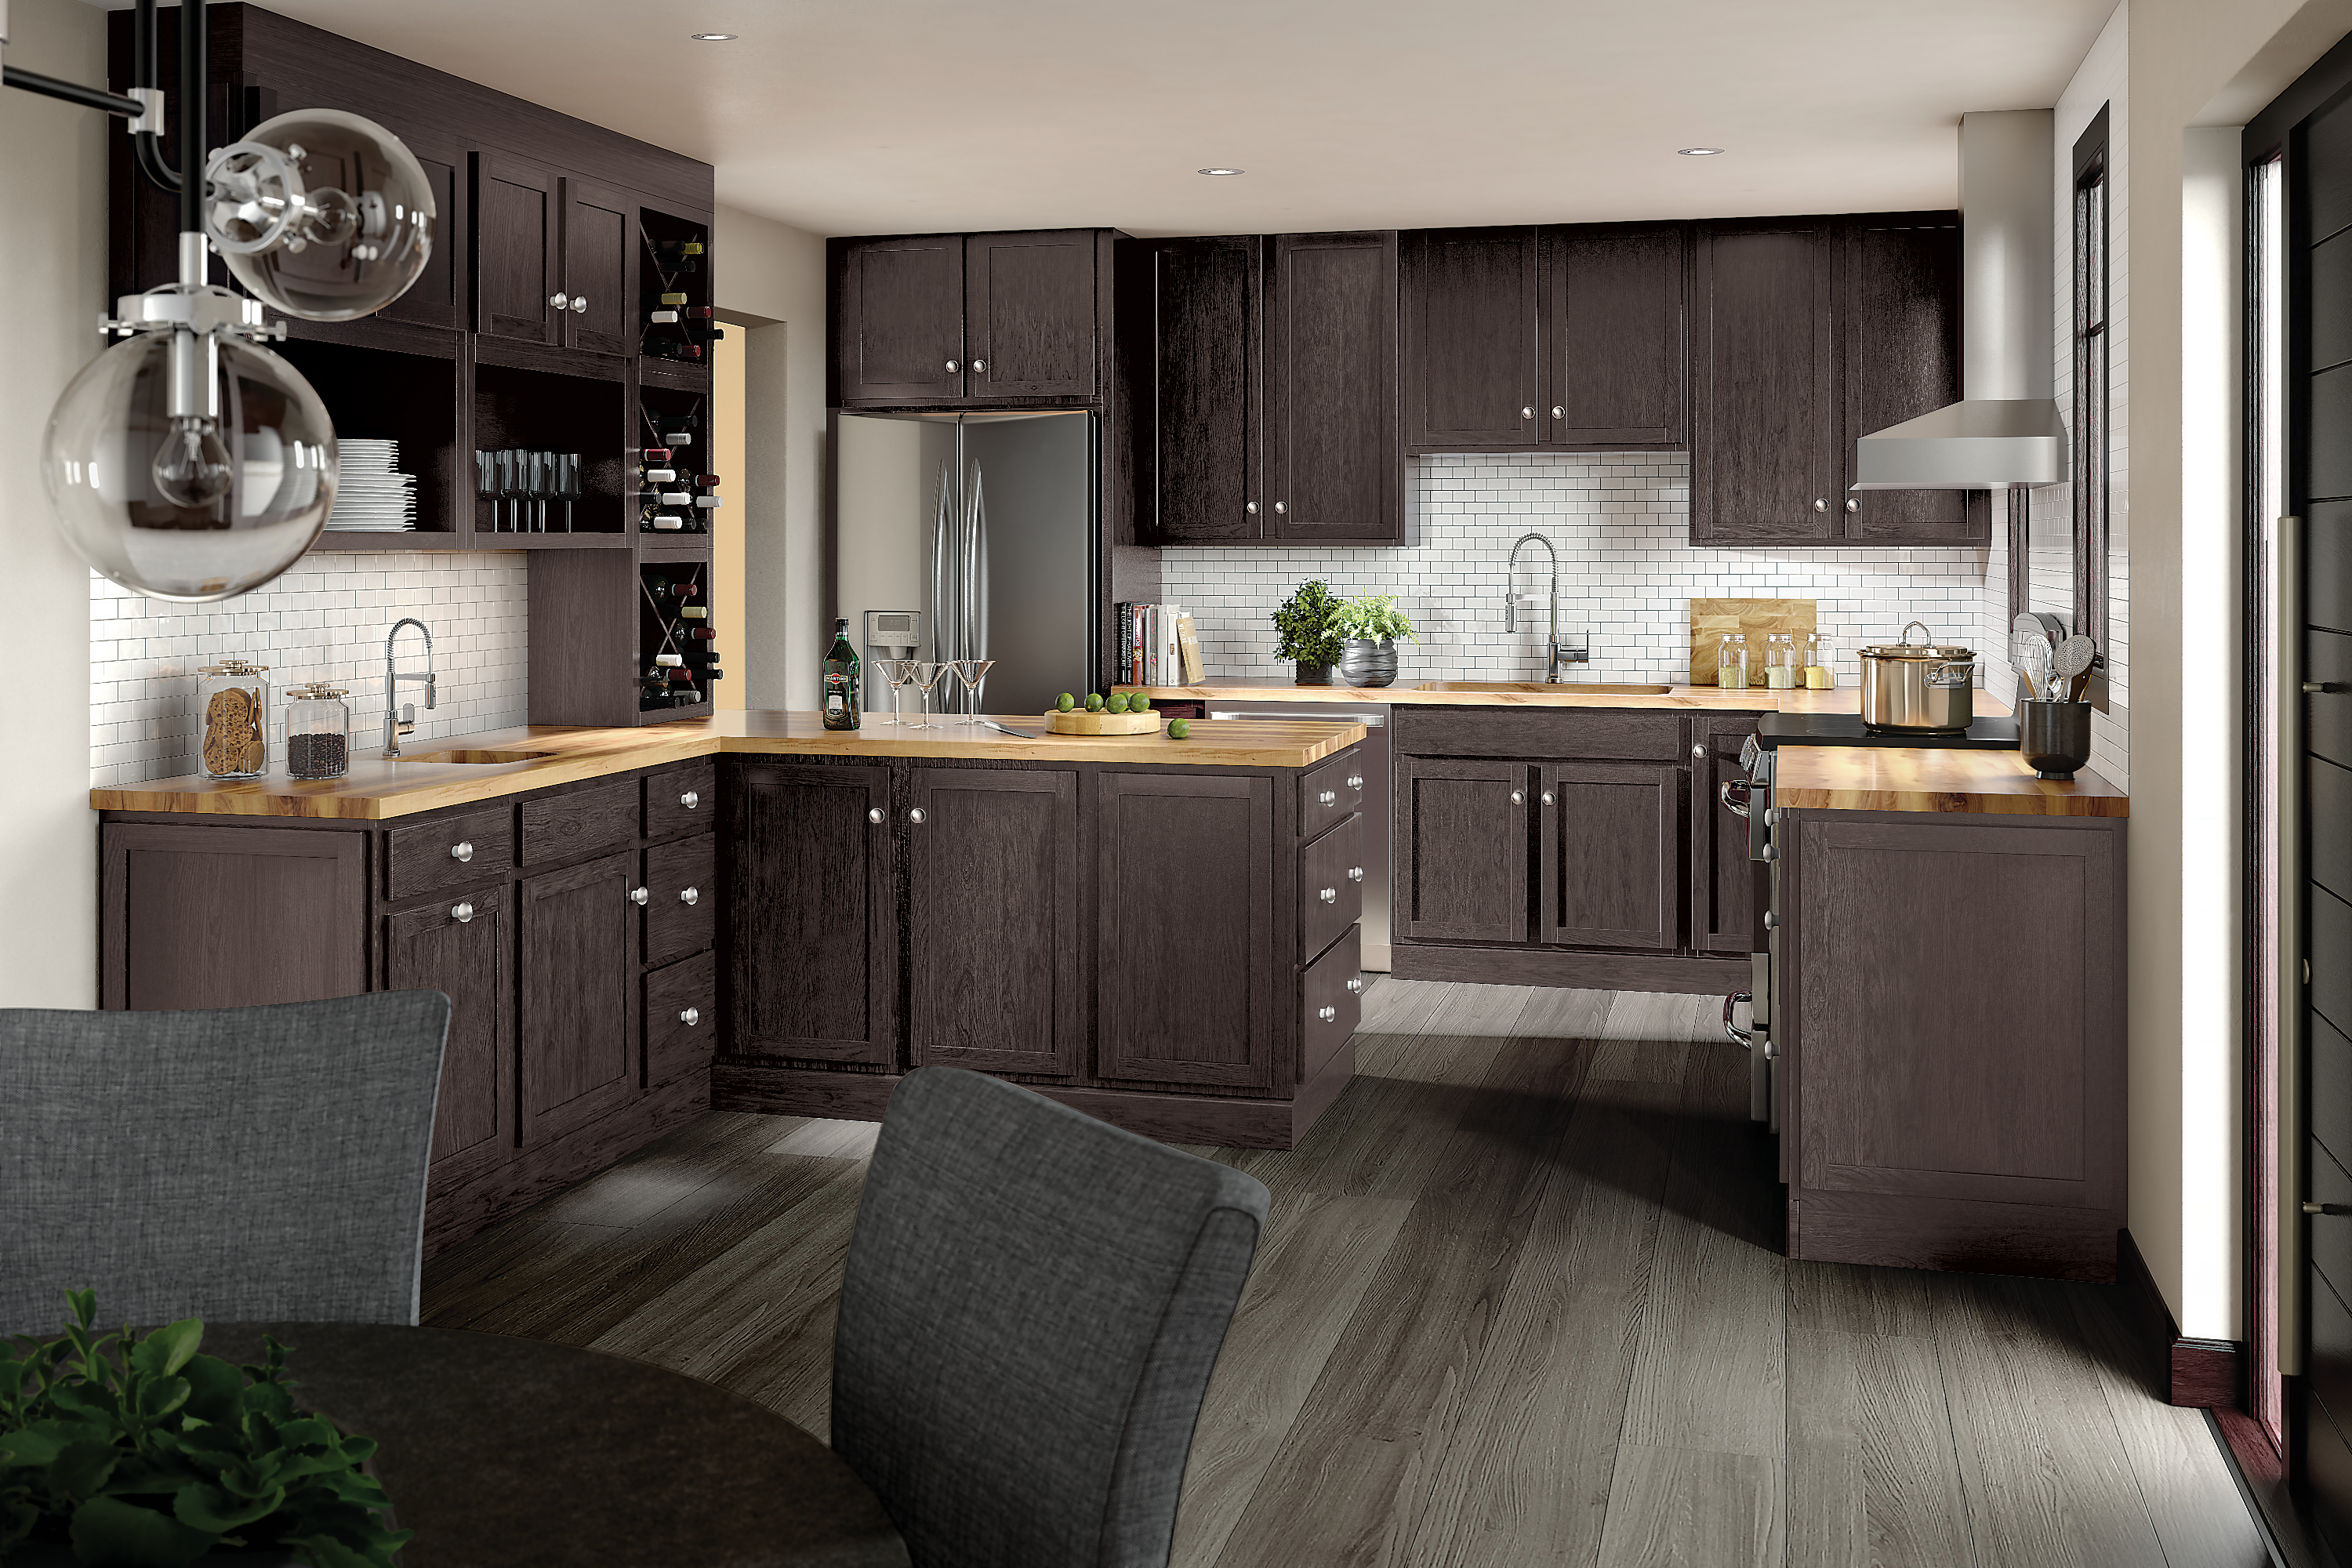 Merillat Classic 174 Marlin Maple In Basalt Cabinets